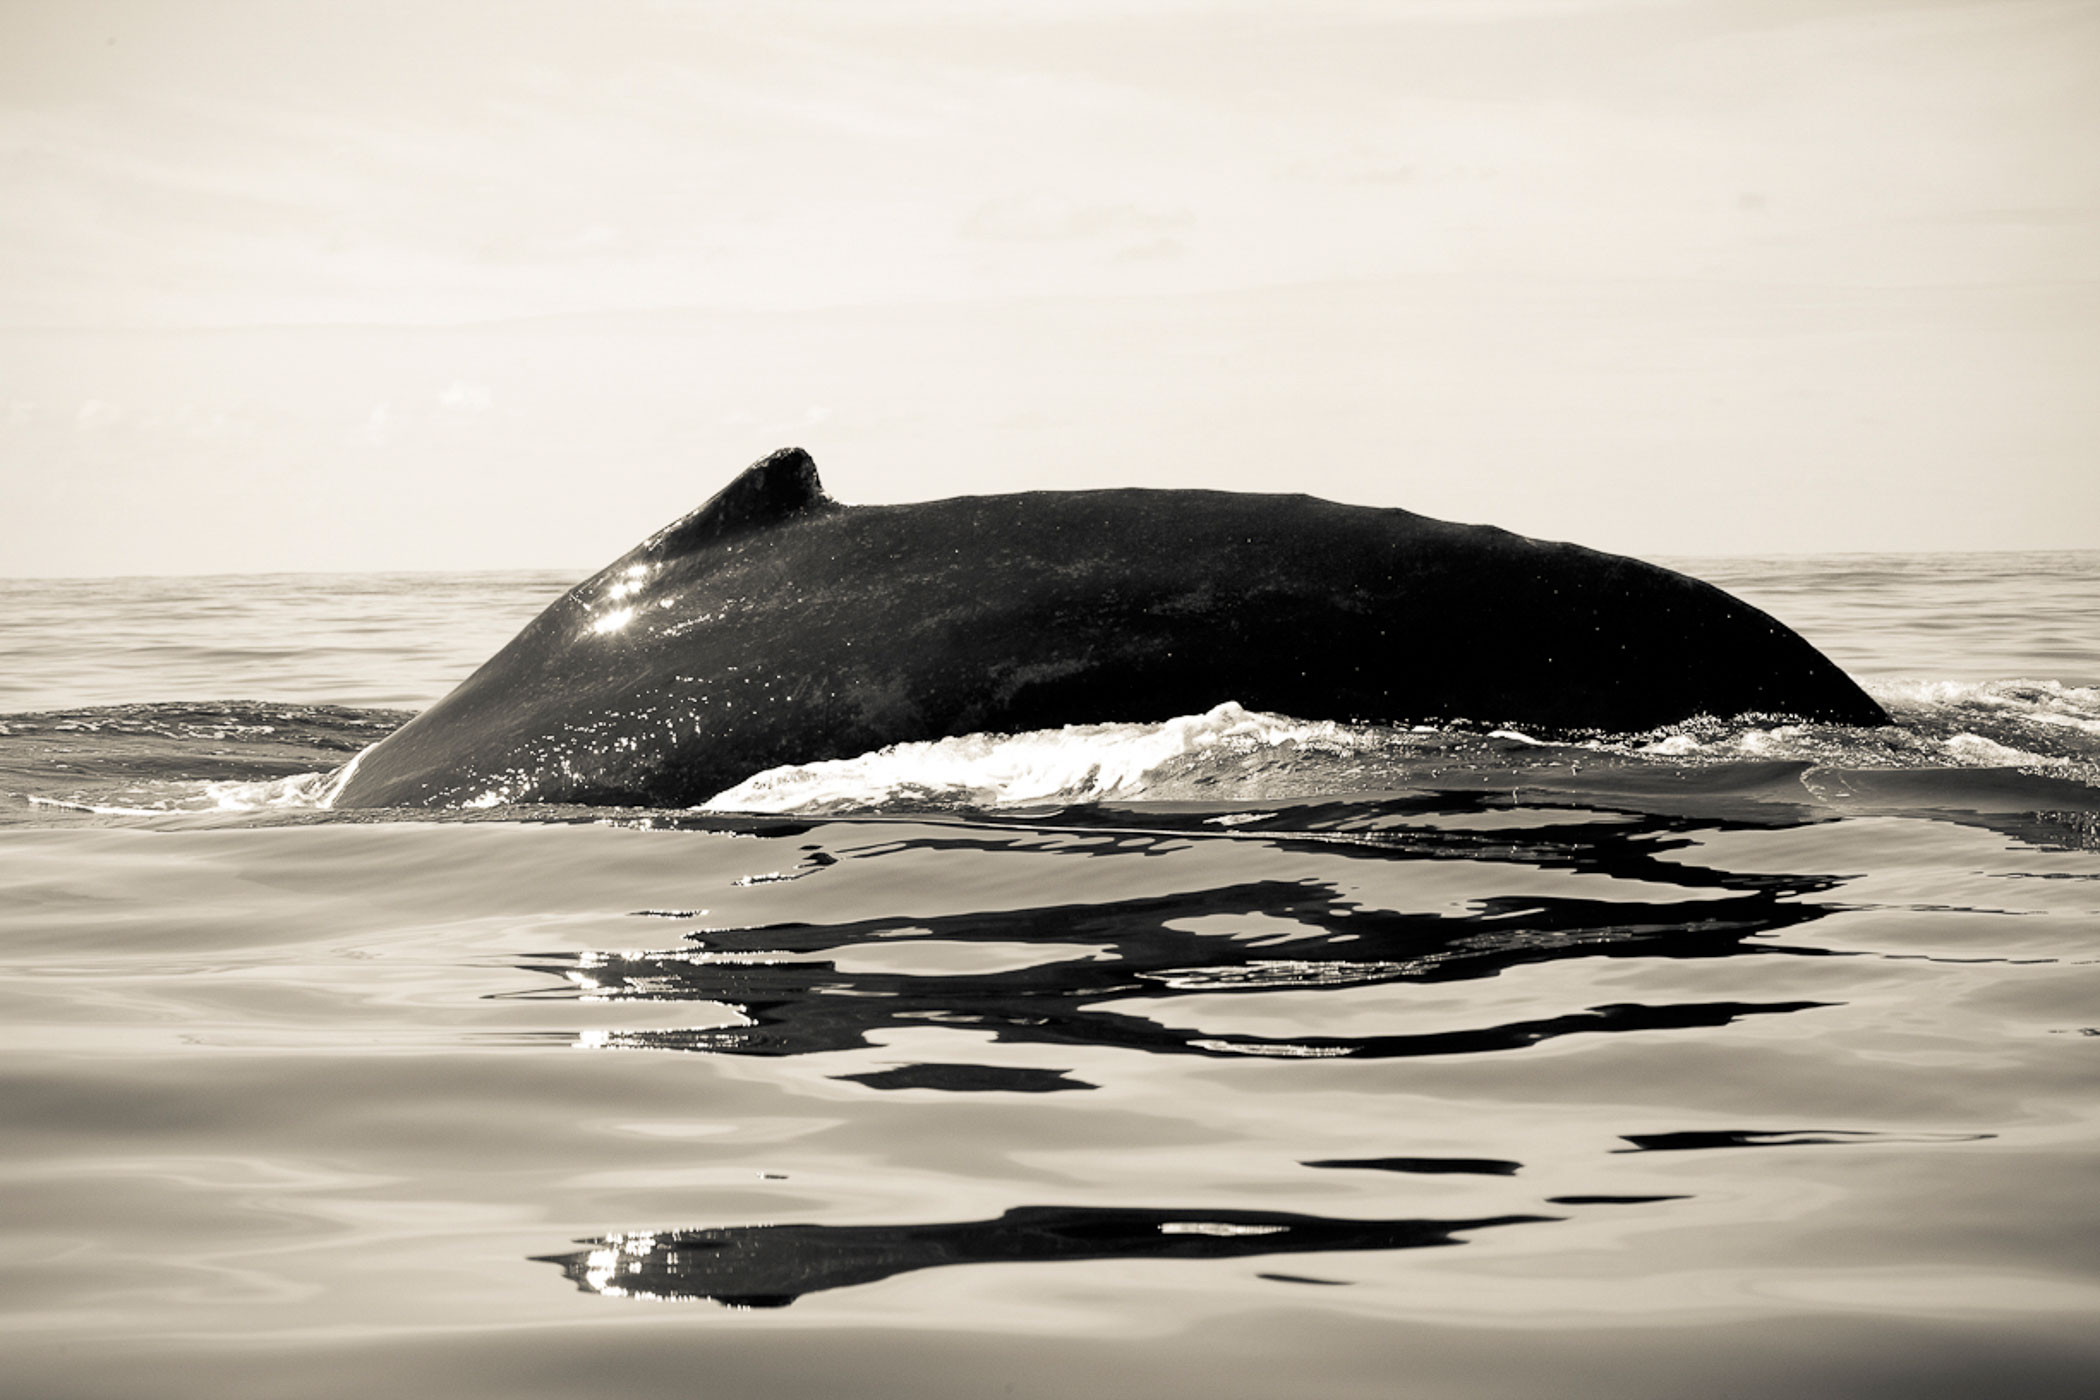 Underwater Editorial Photography_Humpback Whale Fin